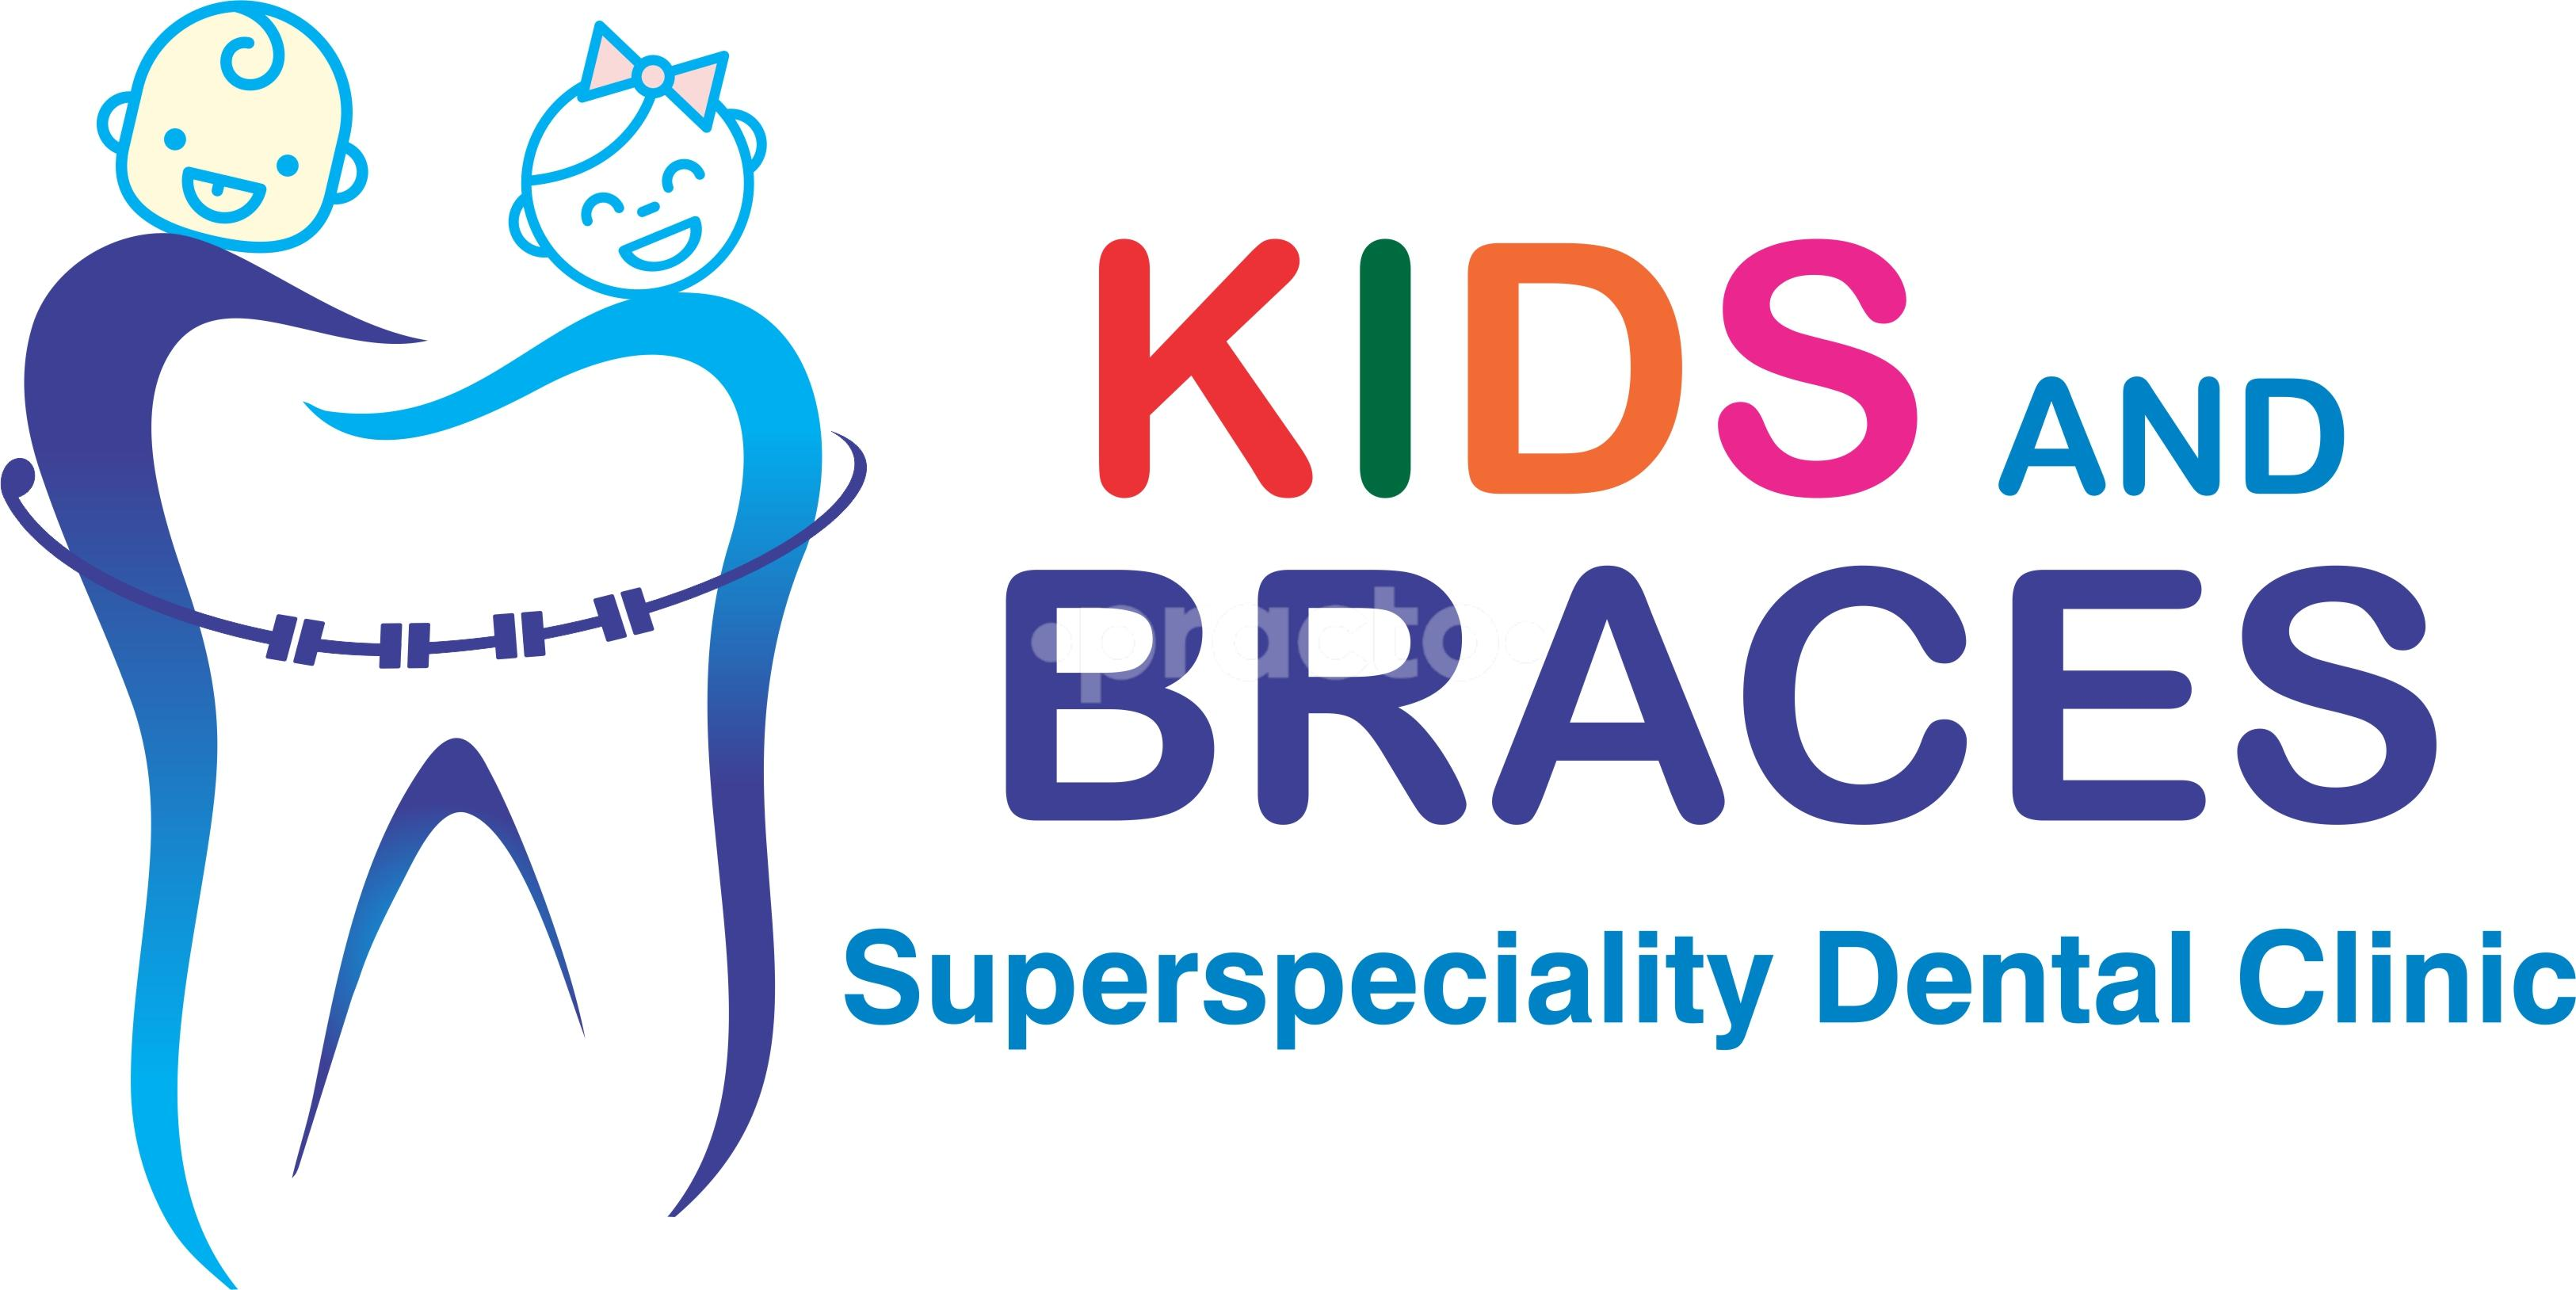 Kids and Braces Superspeciality Dental Clinic